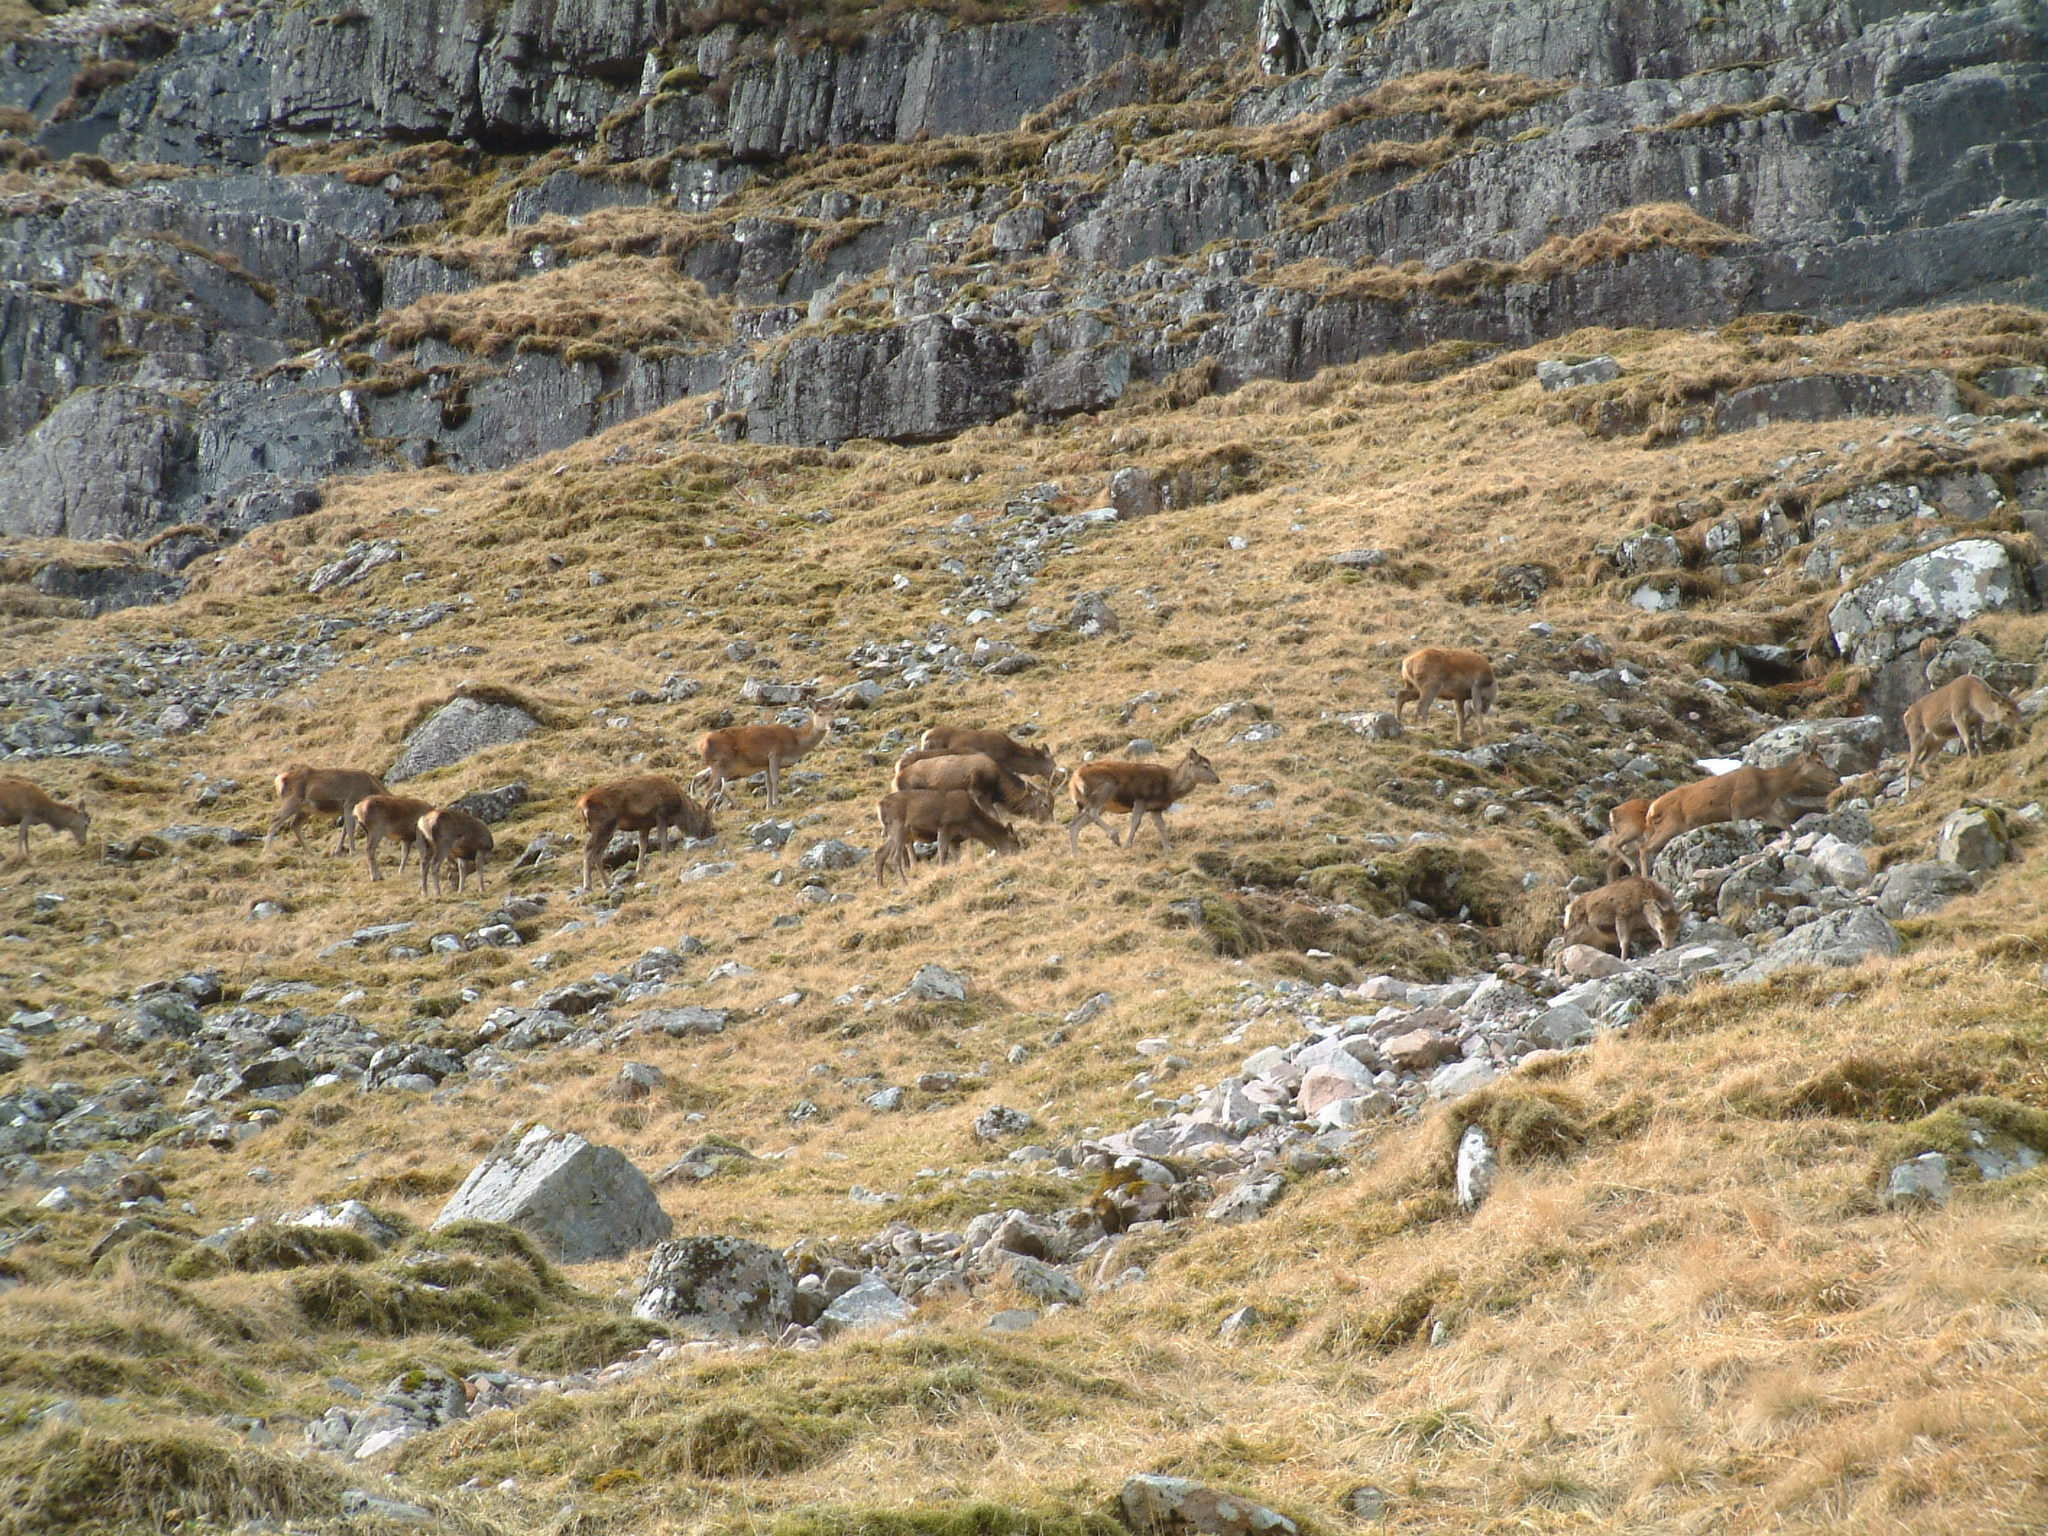 Deer in Hidden Valley, Glencoe